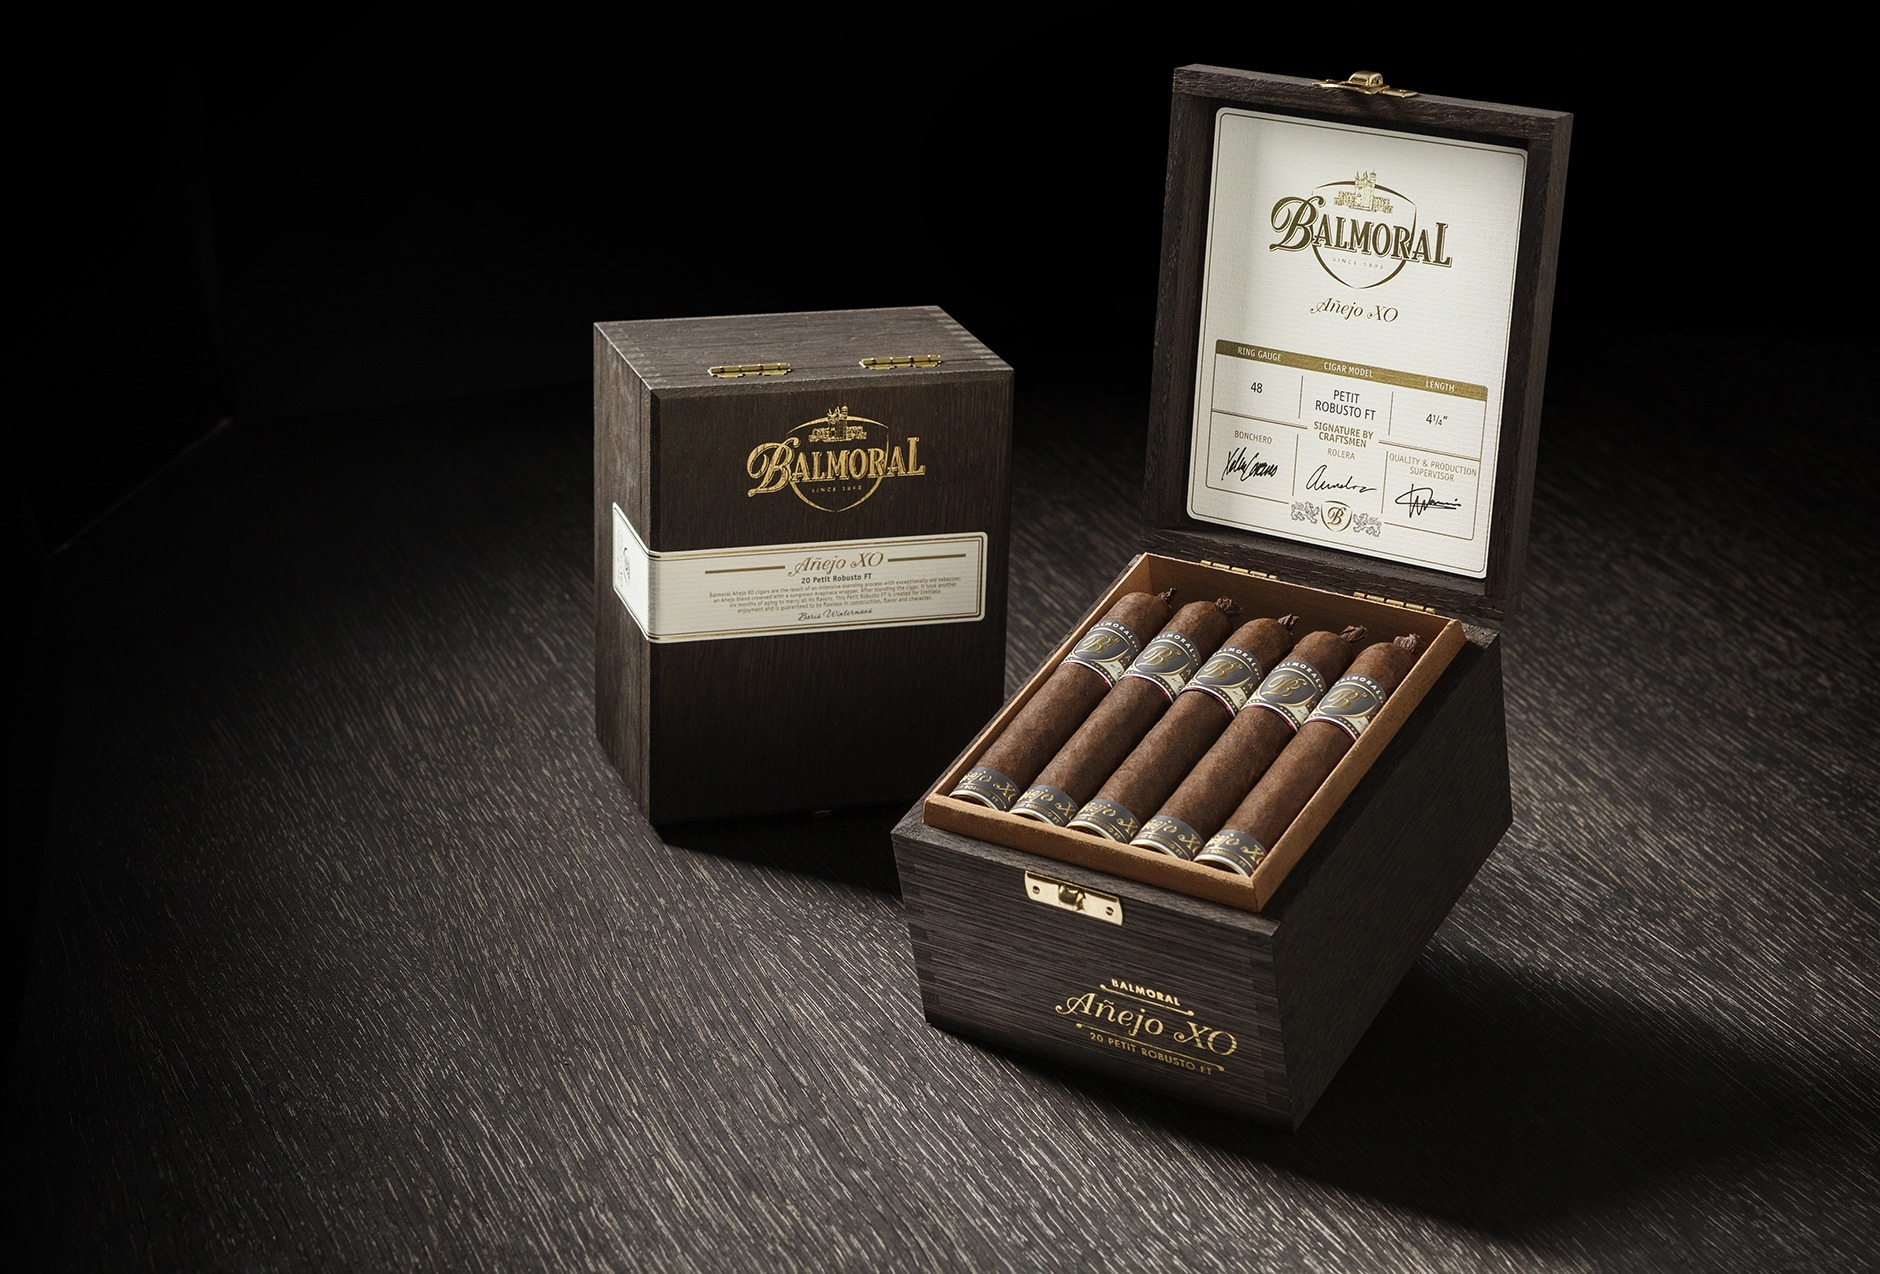 Agio Cigars Announces Balmoral Anejo XO For Release At 2015 IPCPR Show